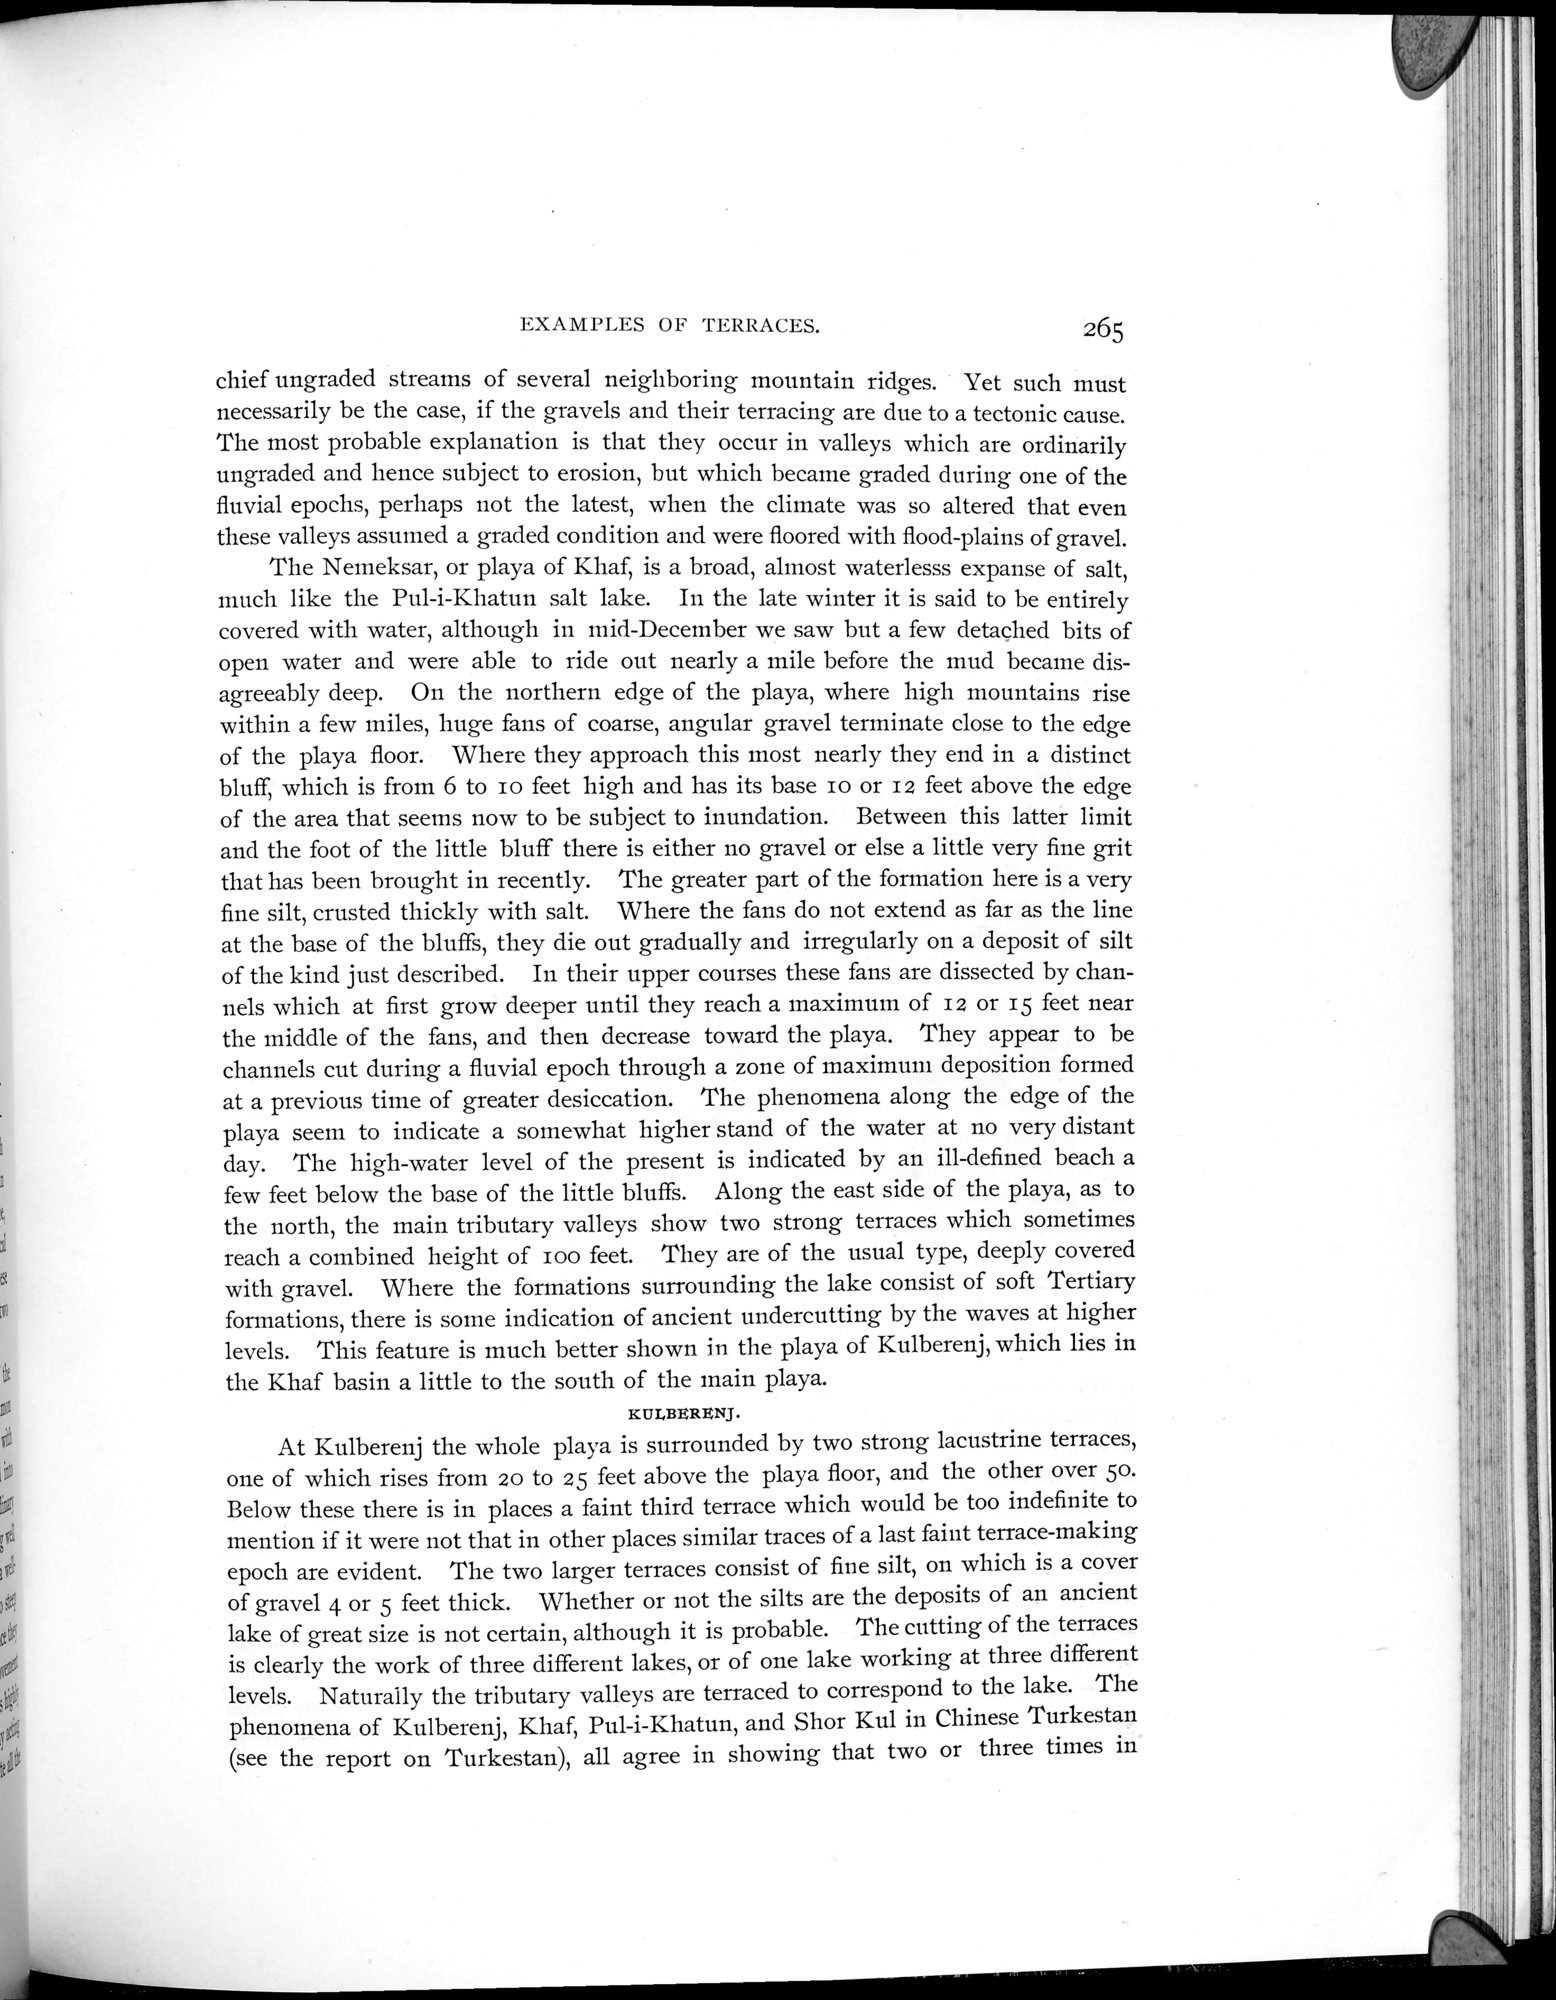 Explorations in Turkestan 1903 : vol.1 / Page 297 (Grayscale High Resolution Image)